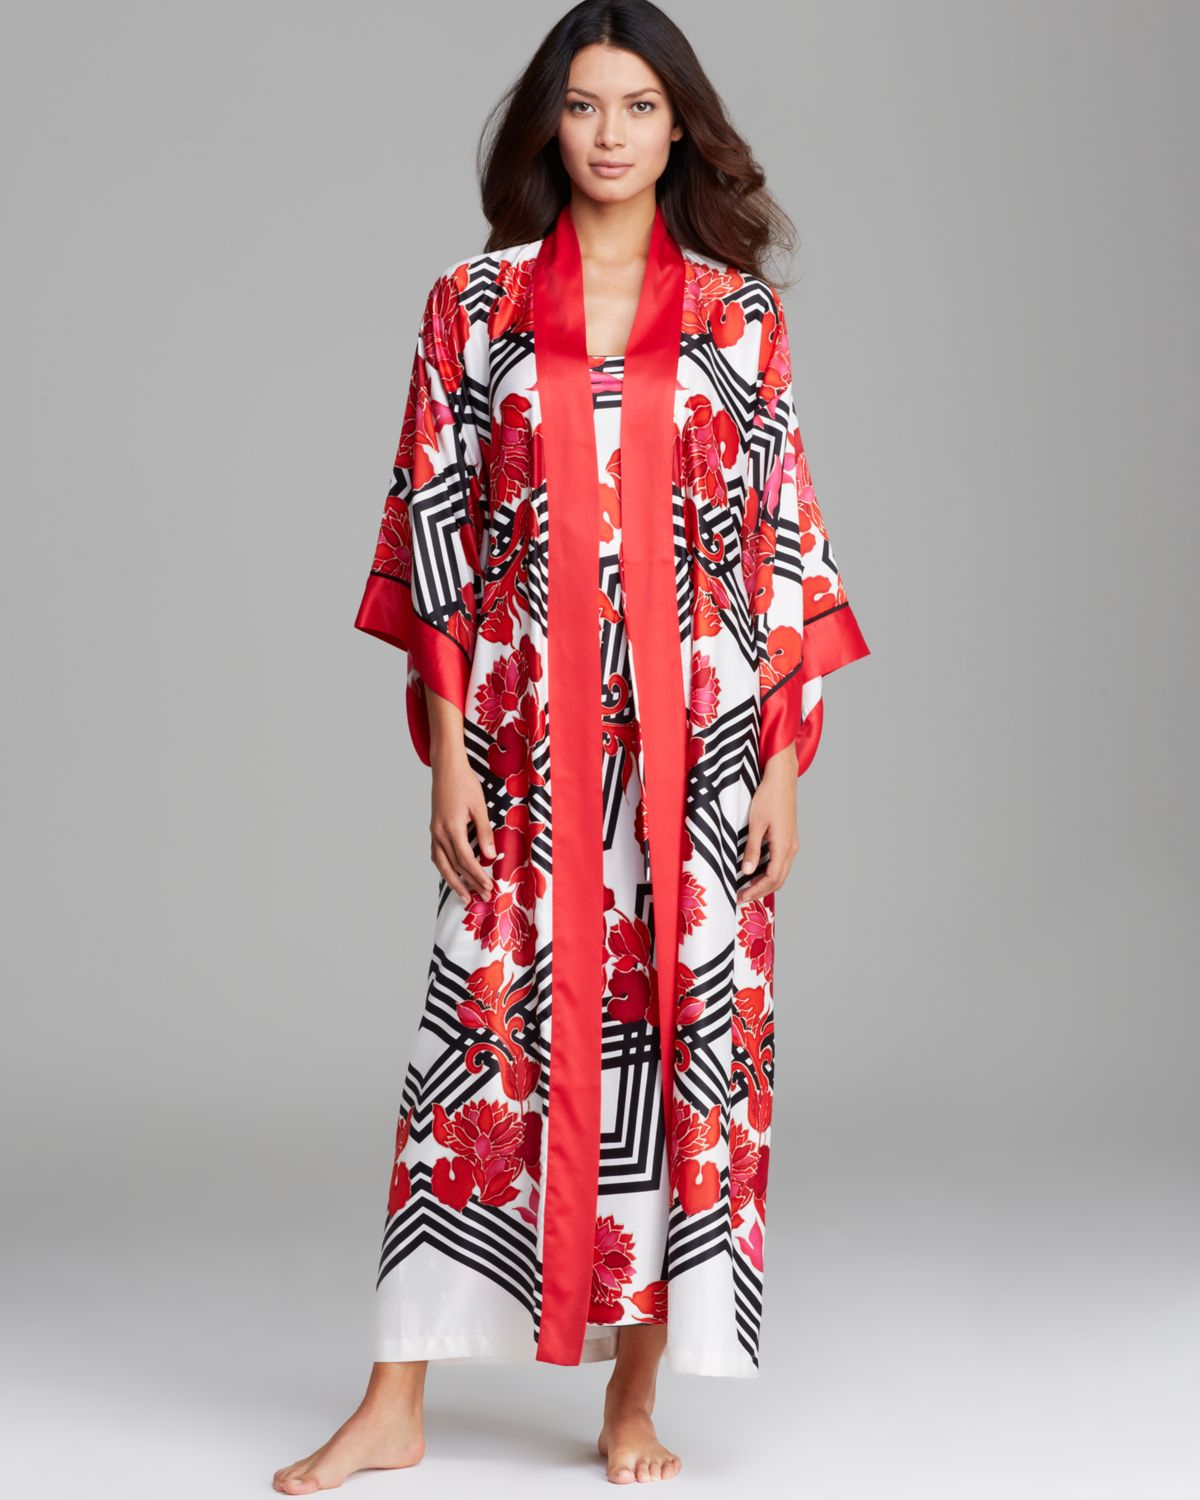 Lyst - Natori Piccadilly Robe in Black 0bbbe3a9b